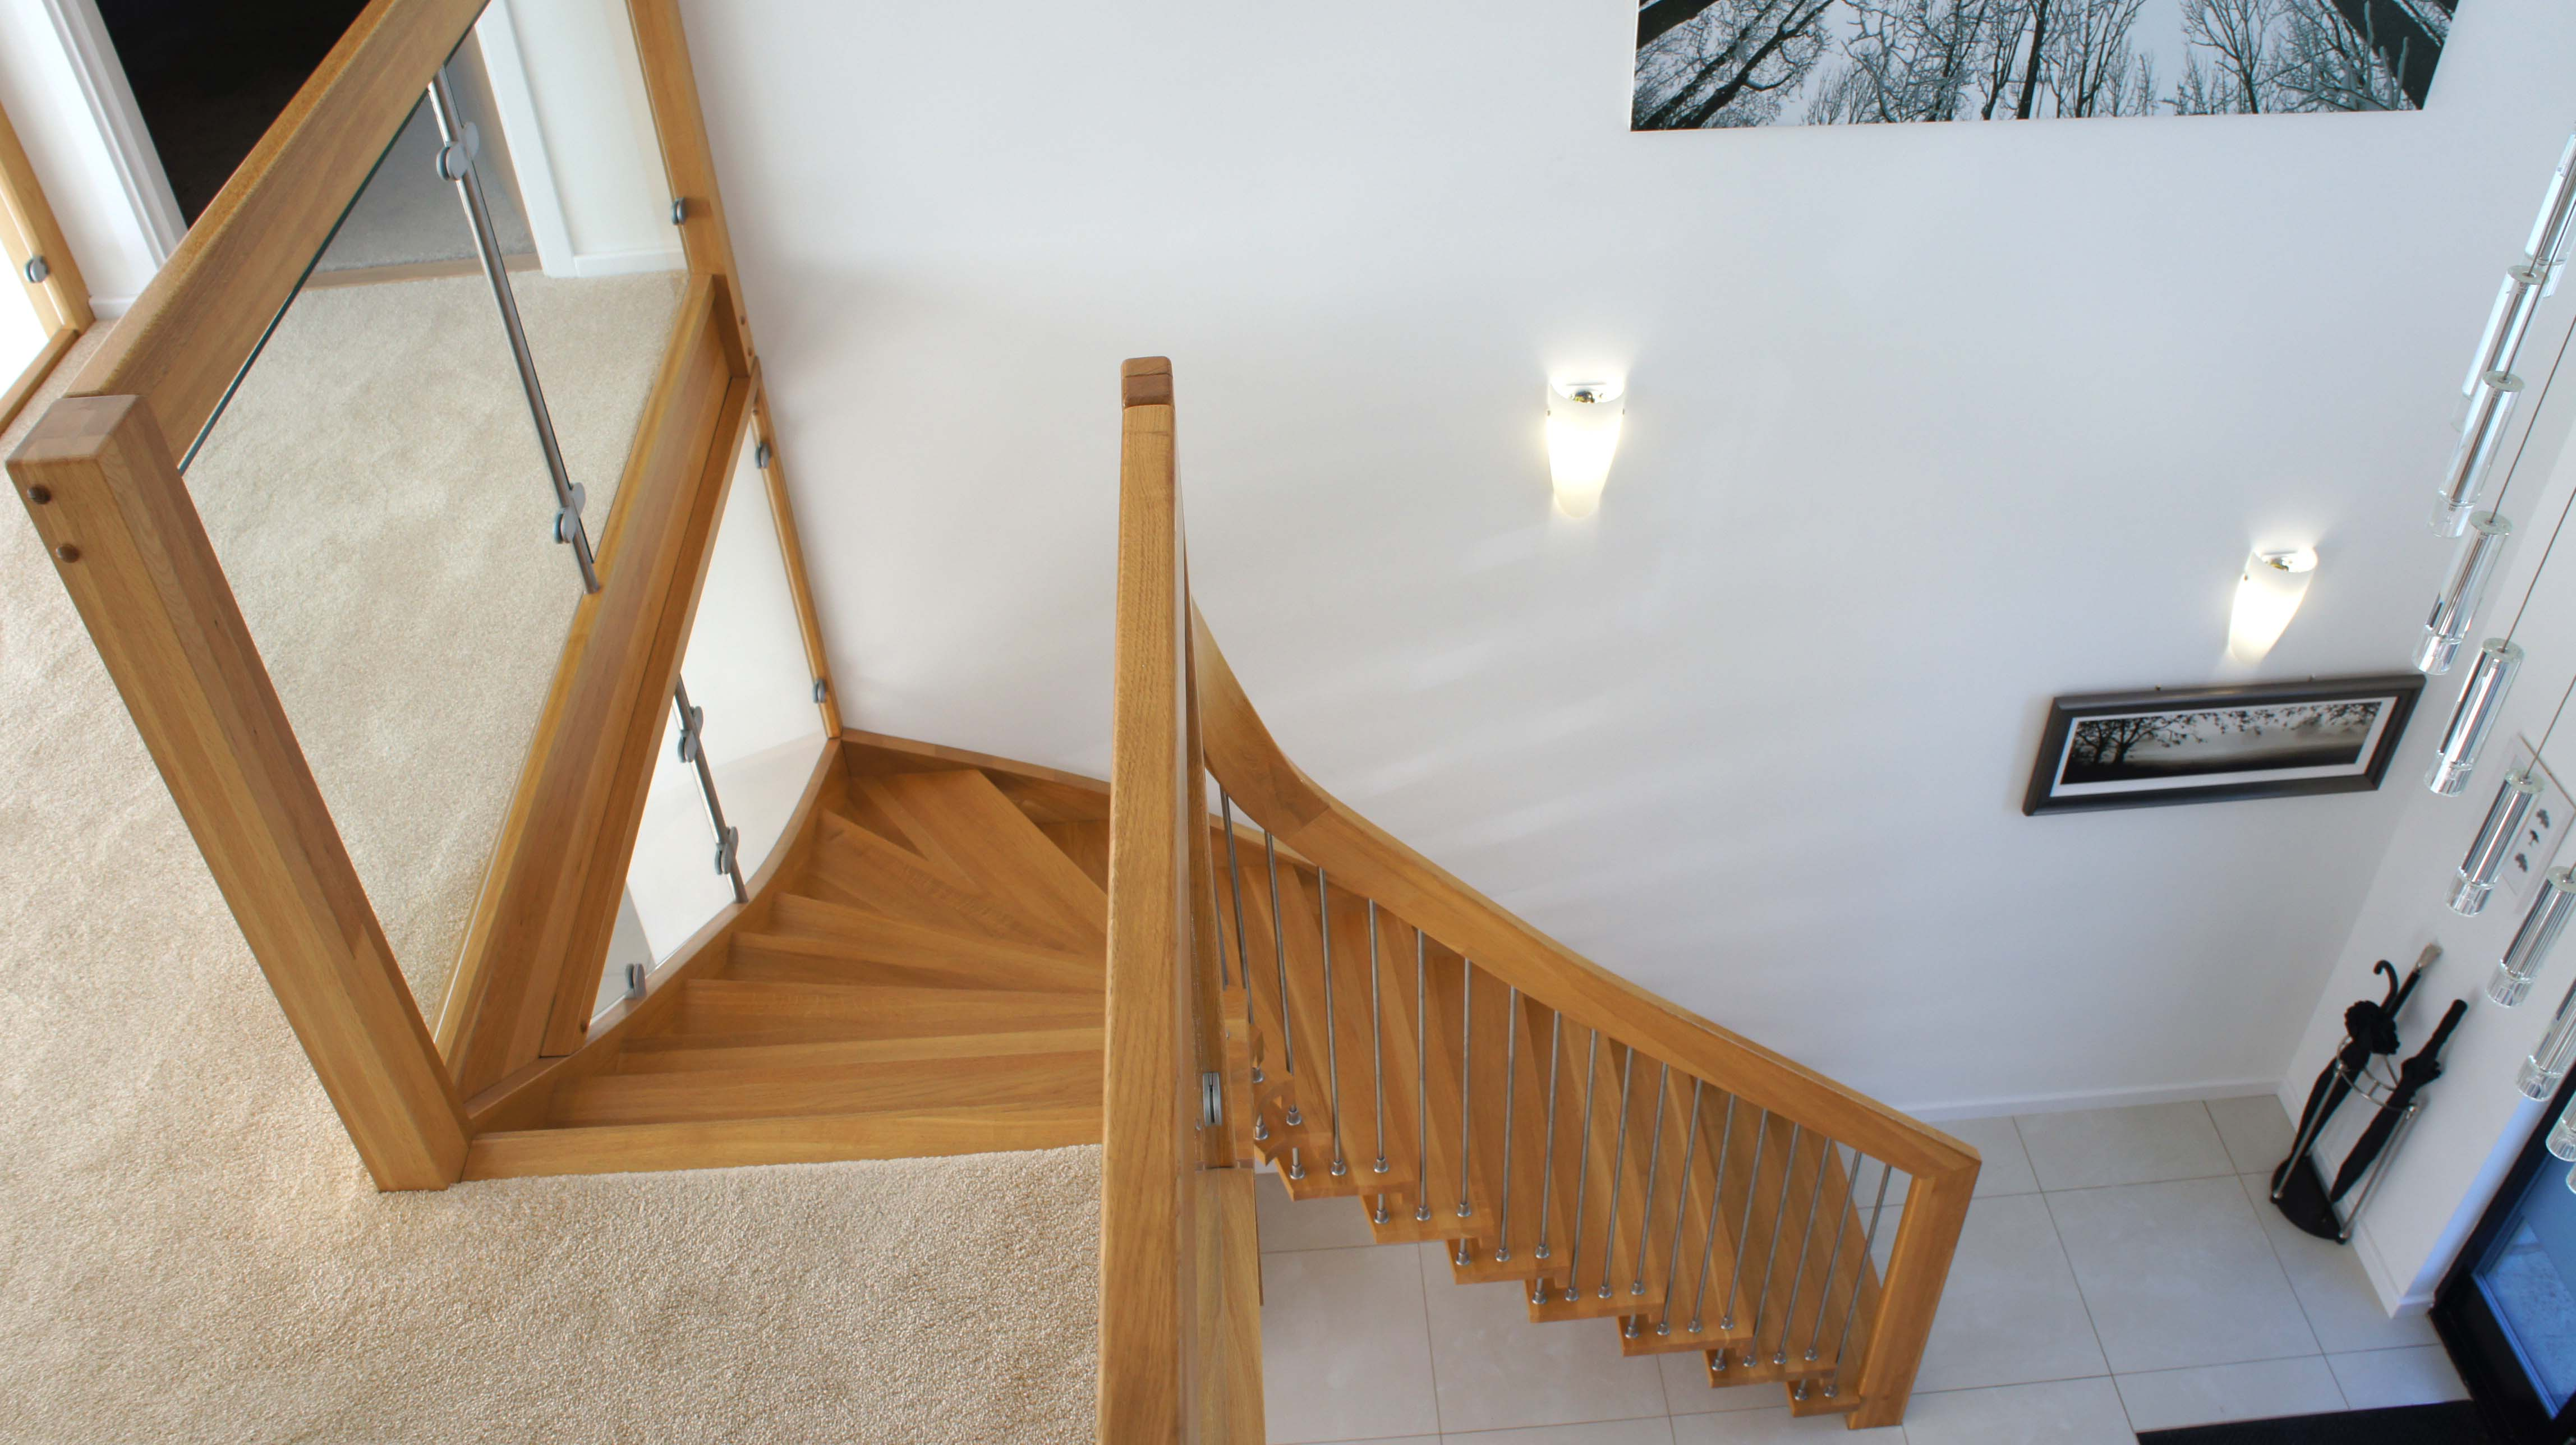 A top down view of a WF floating timber staircase in the New Forest